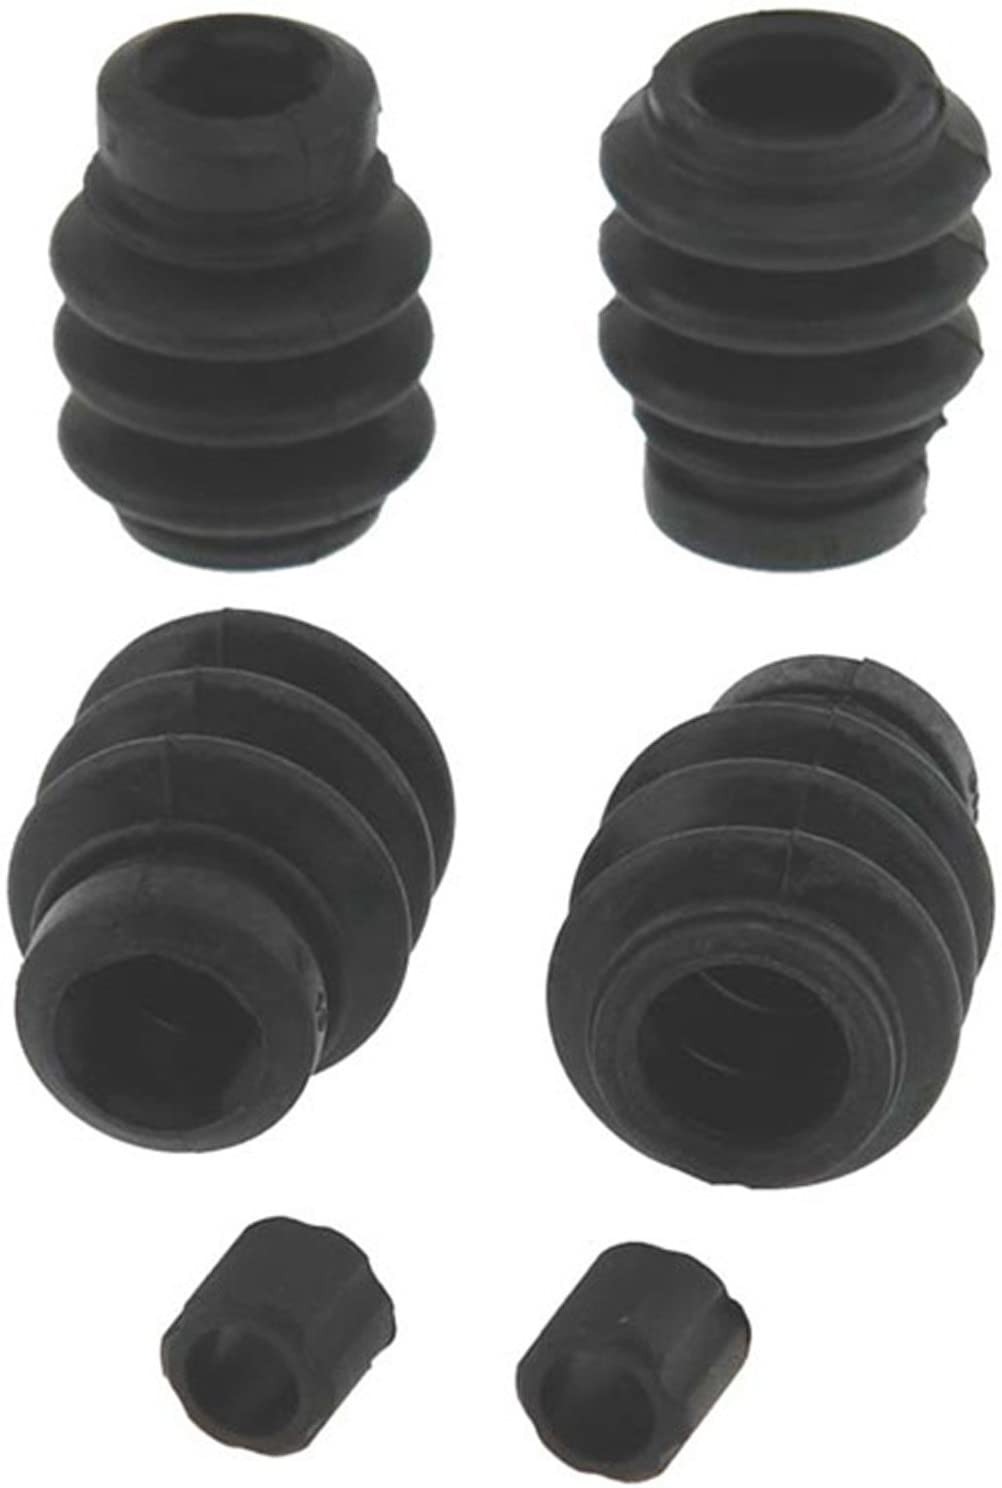 ACDelco 18K1929 Professional Front Disc Brake Caliper Rubber Bushing Kit with Seals and Bushings